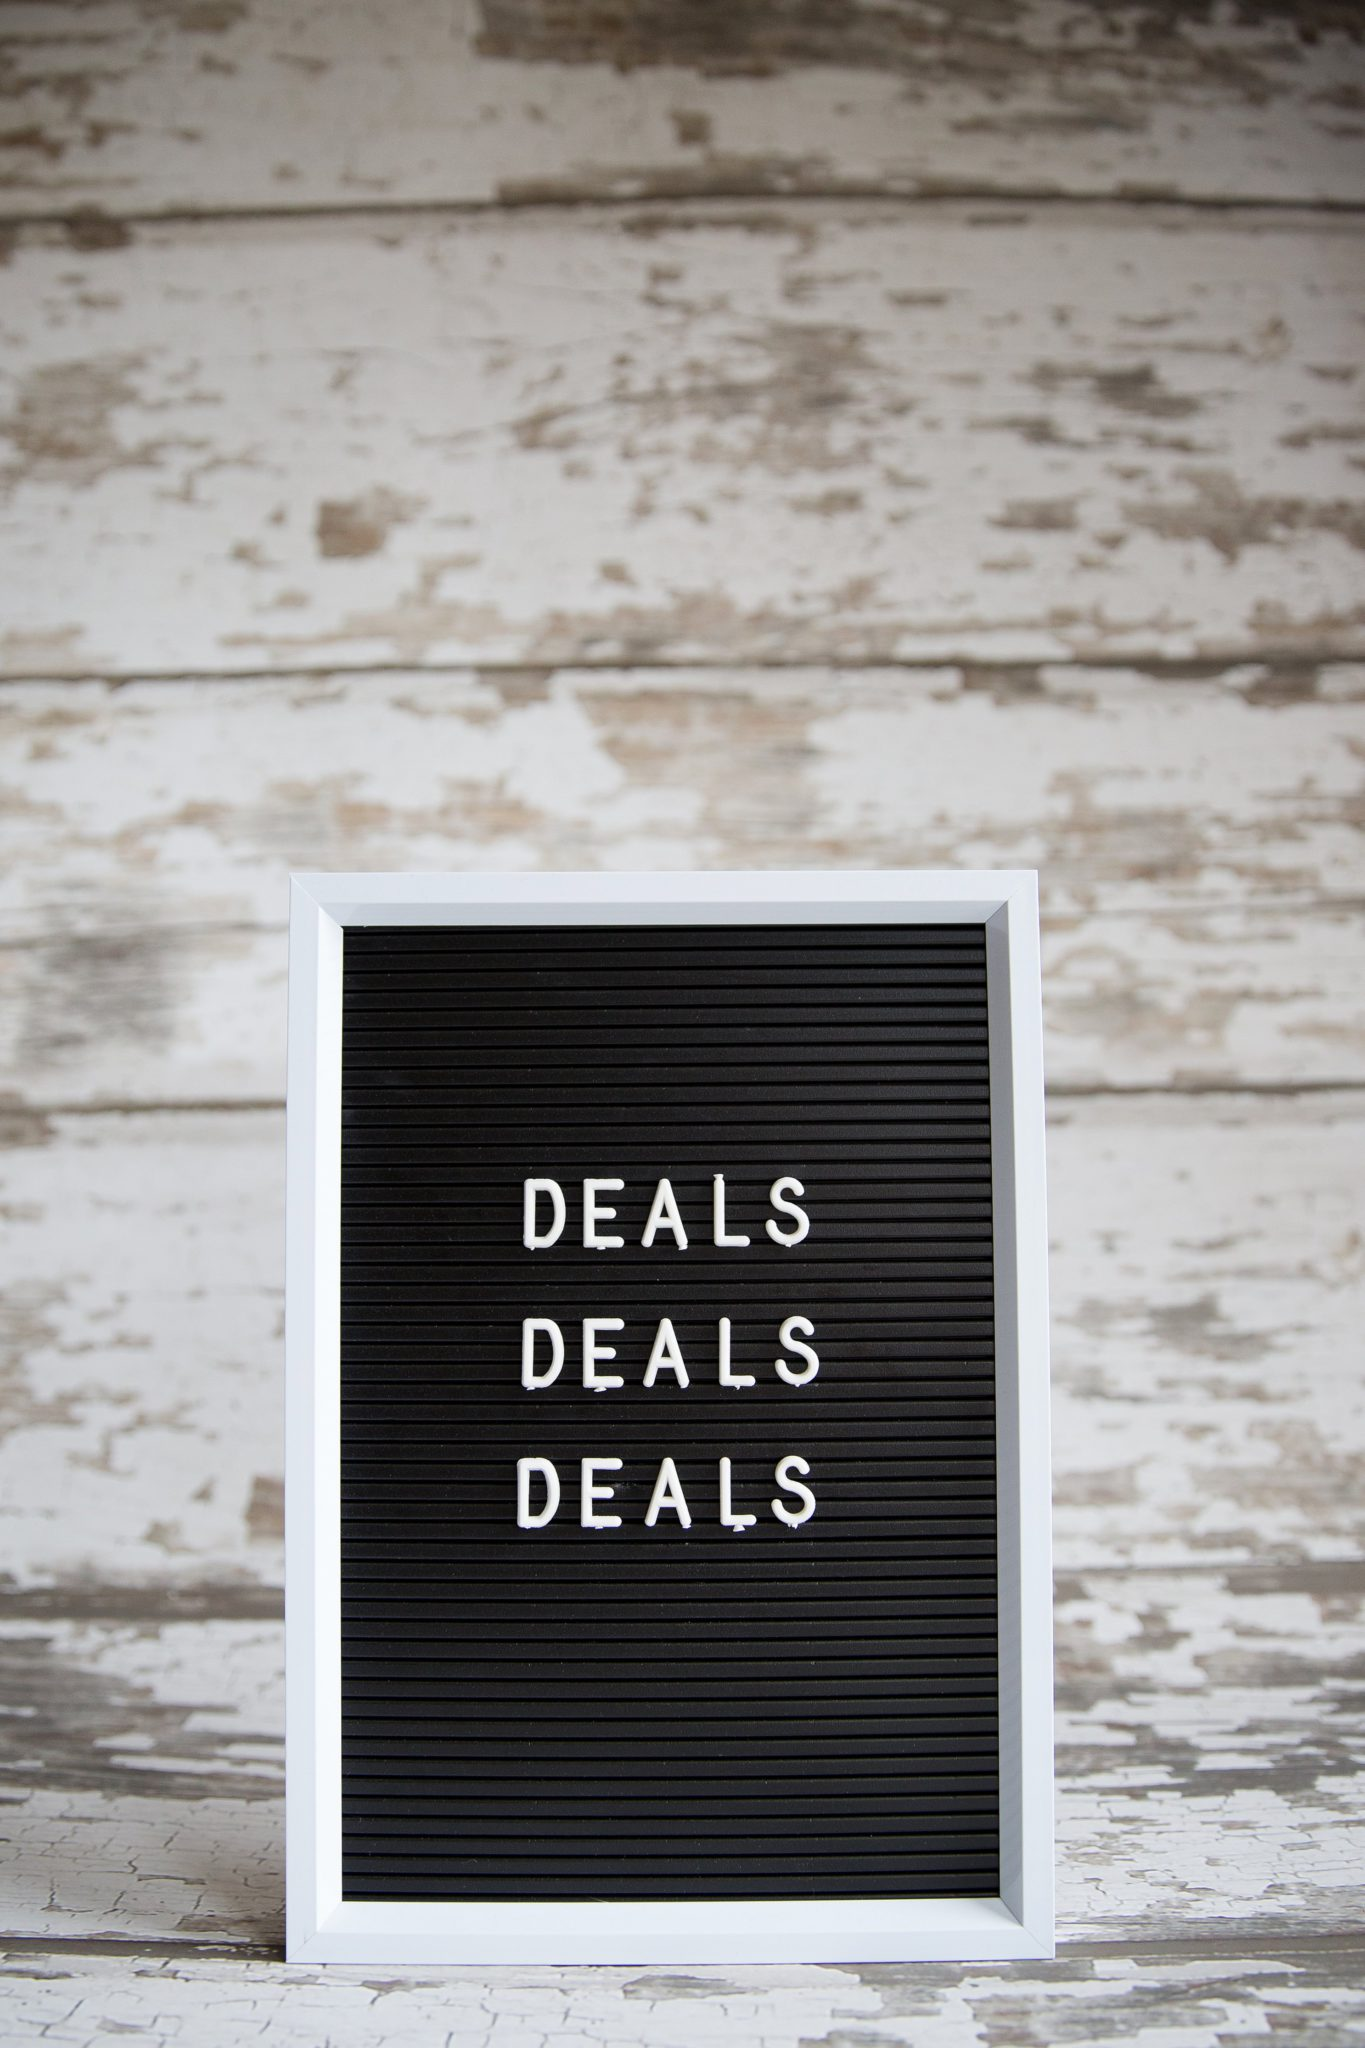 deal deals deals - 10 Best Business Deals for Black Friday, Cyber Monday, and Holiday Sales In 2019